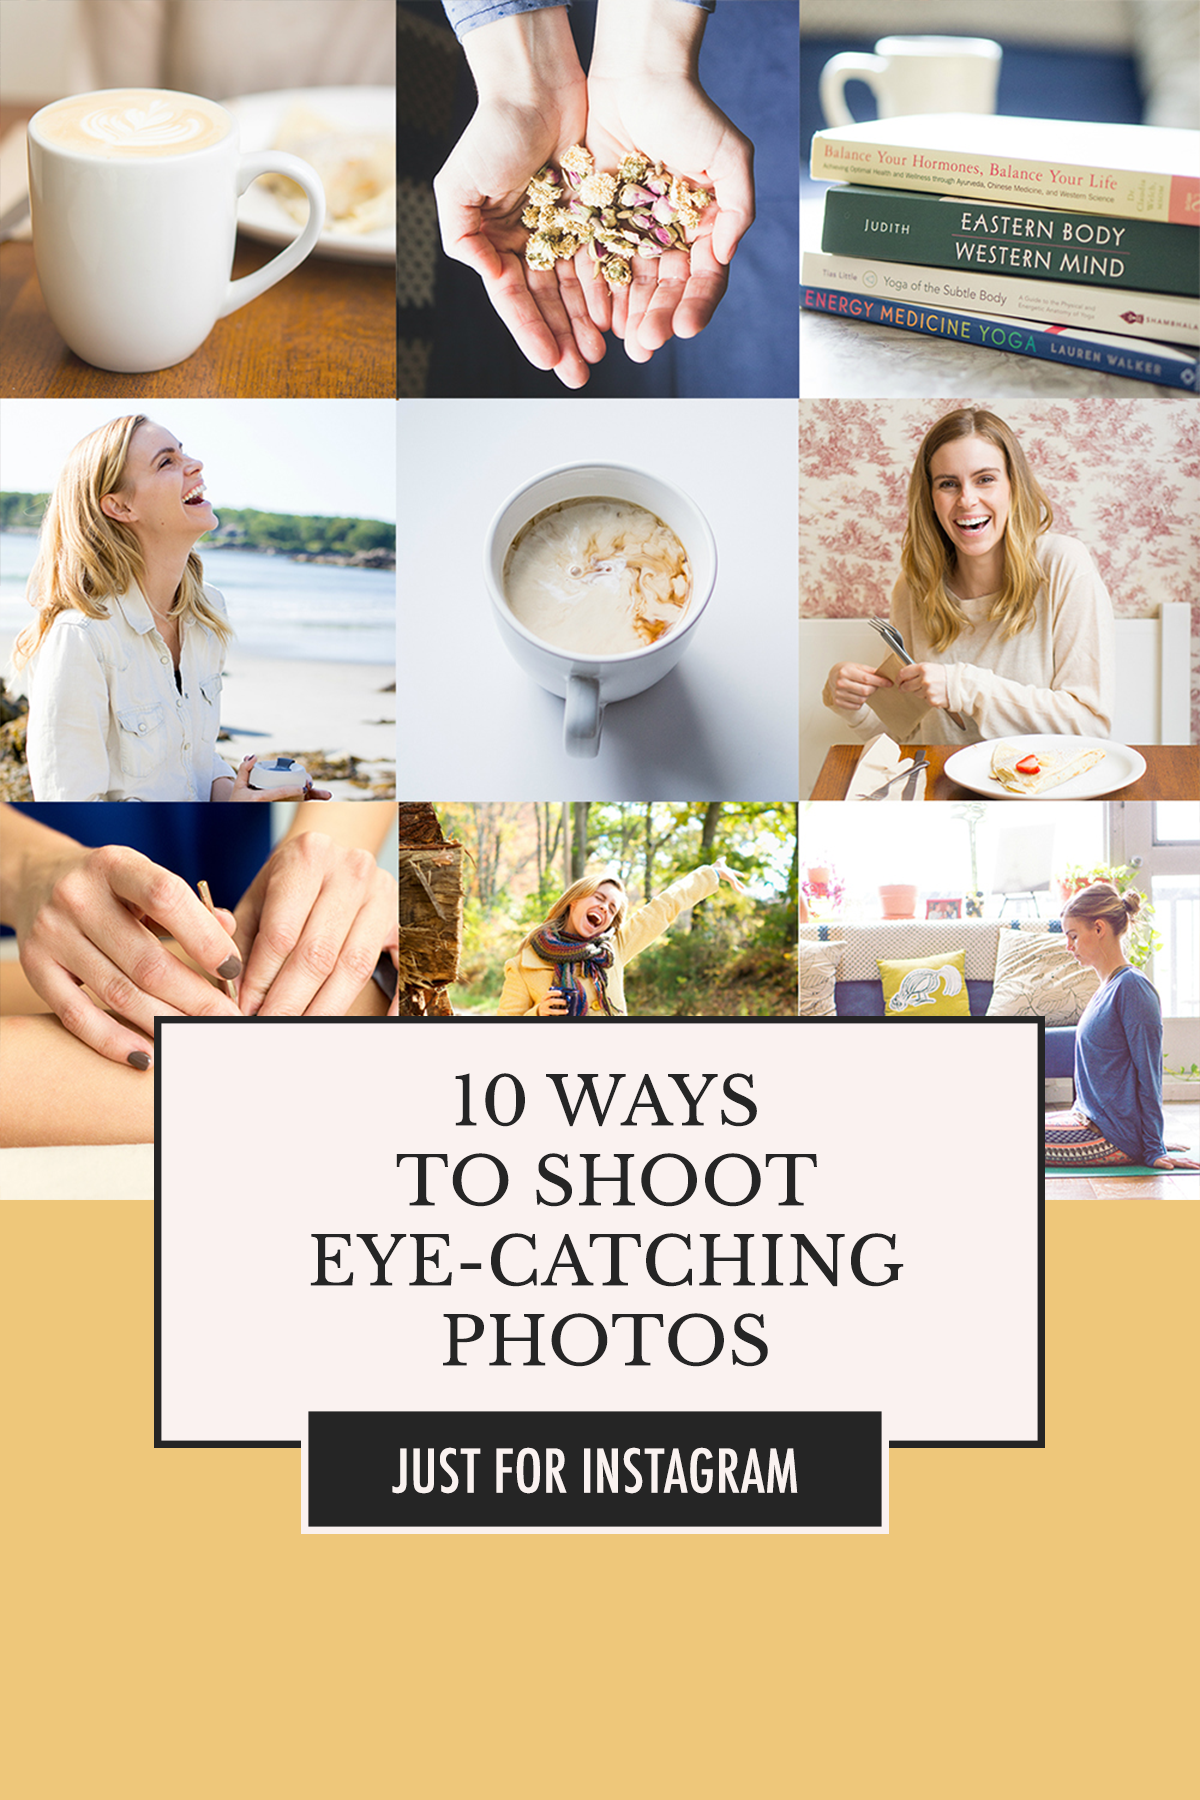 10 Ways to Shoot Eye-Catching Photos Just for Instagram   Increase engagement on the world's largest social media platform   Alexis the Greek blog